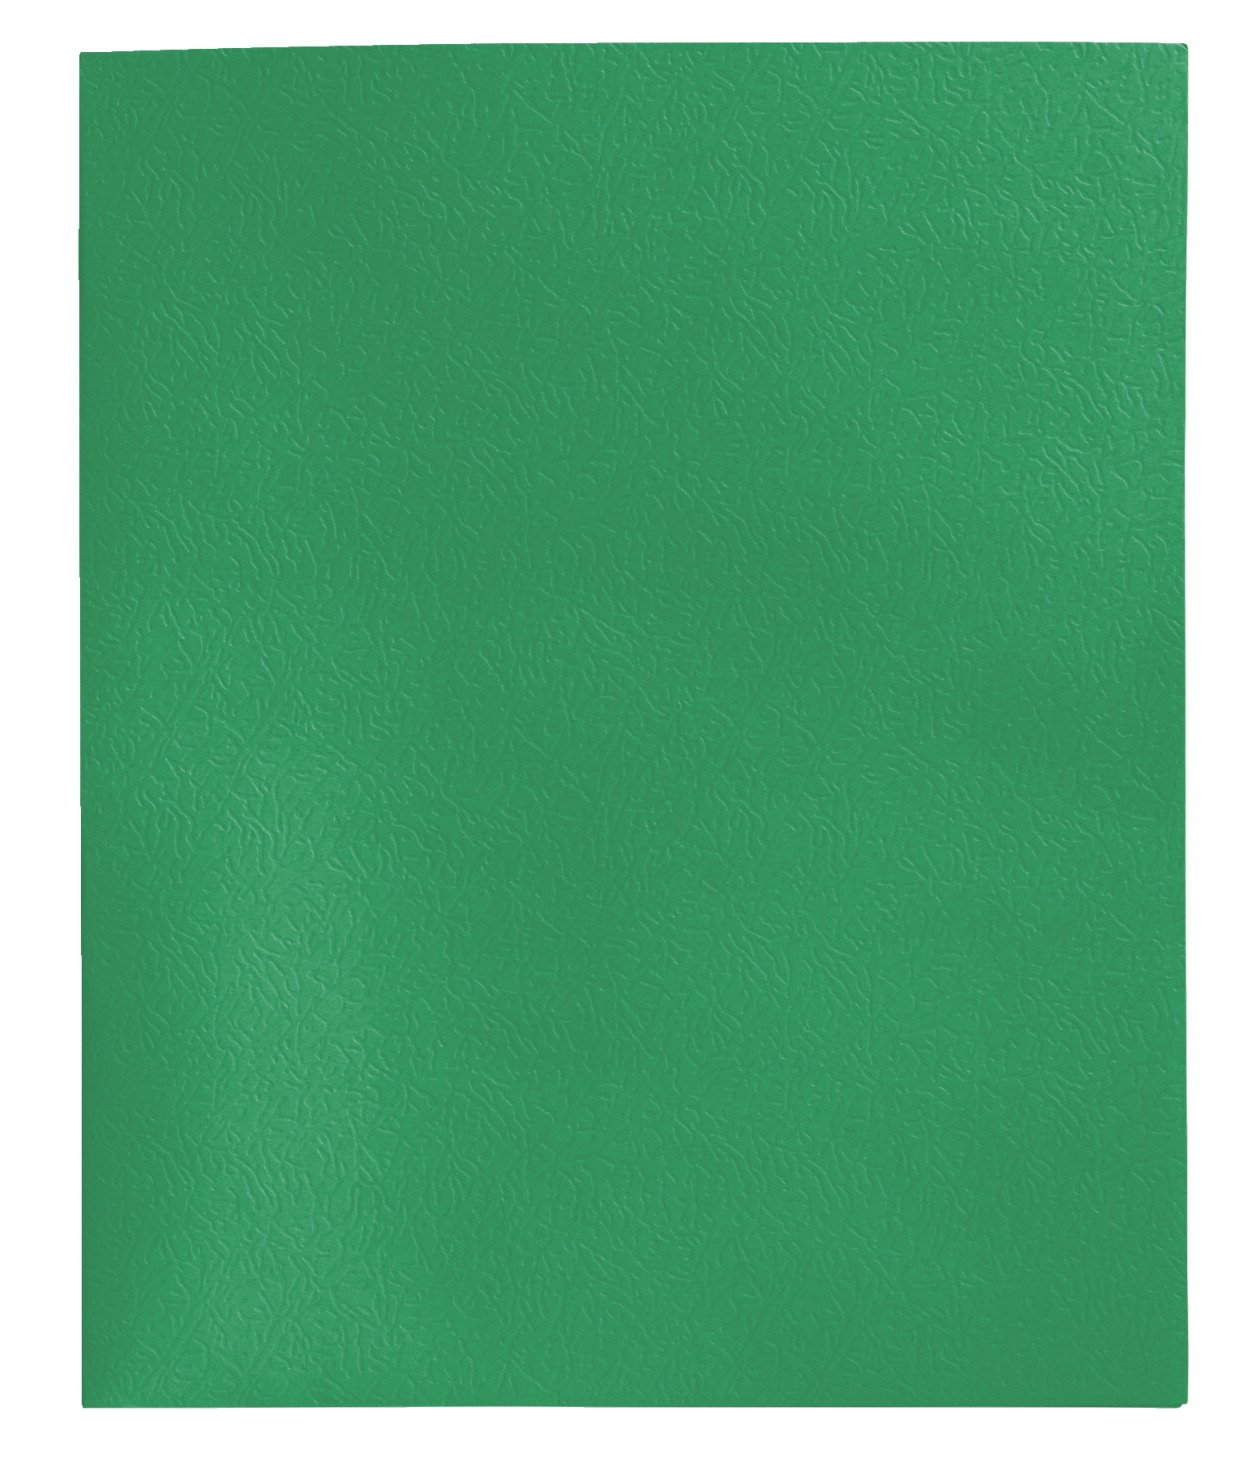 School Smart Heavy Duty 2 Pocket Folder - 8 1/2 x 11 inch - Pack of 25 - Green